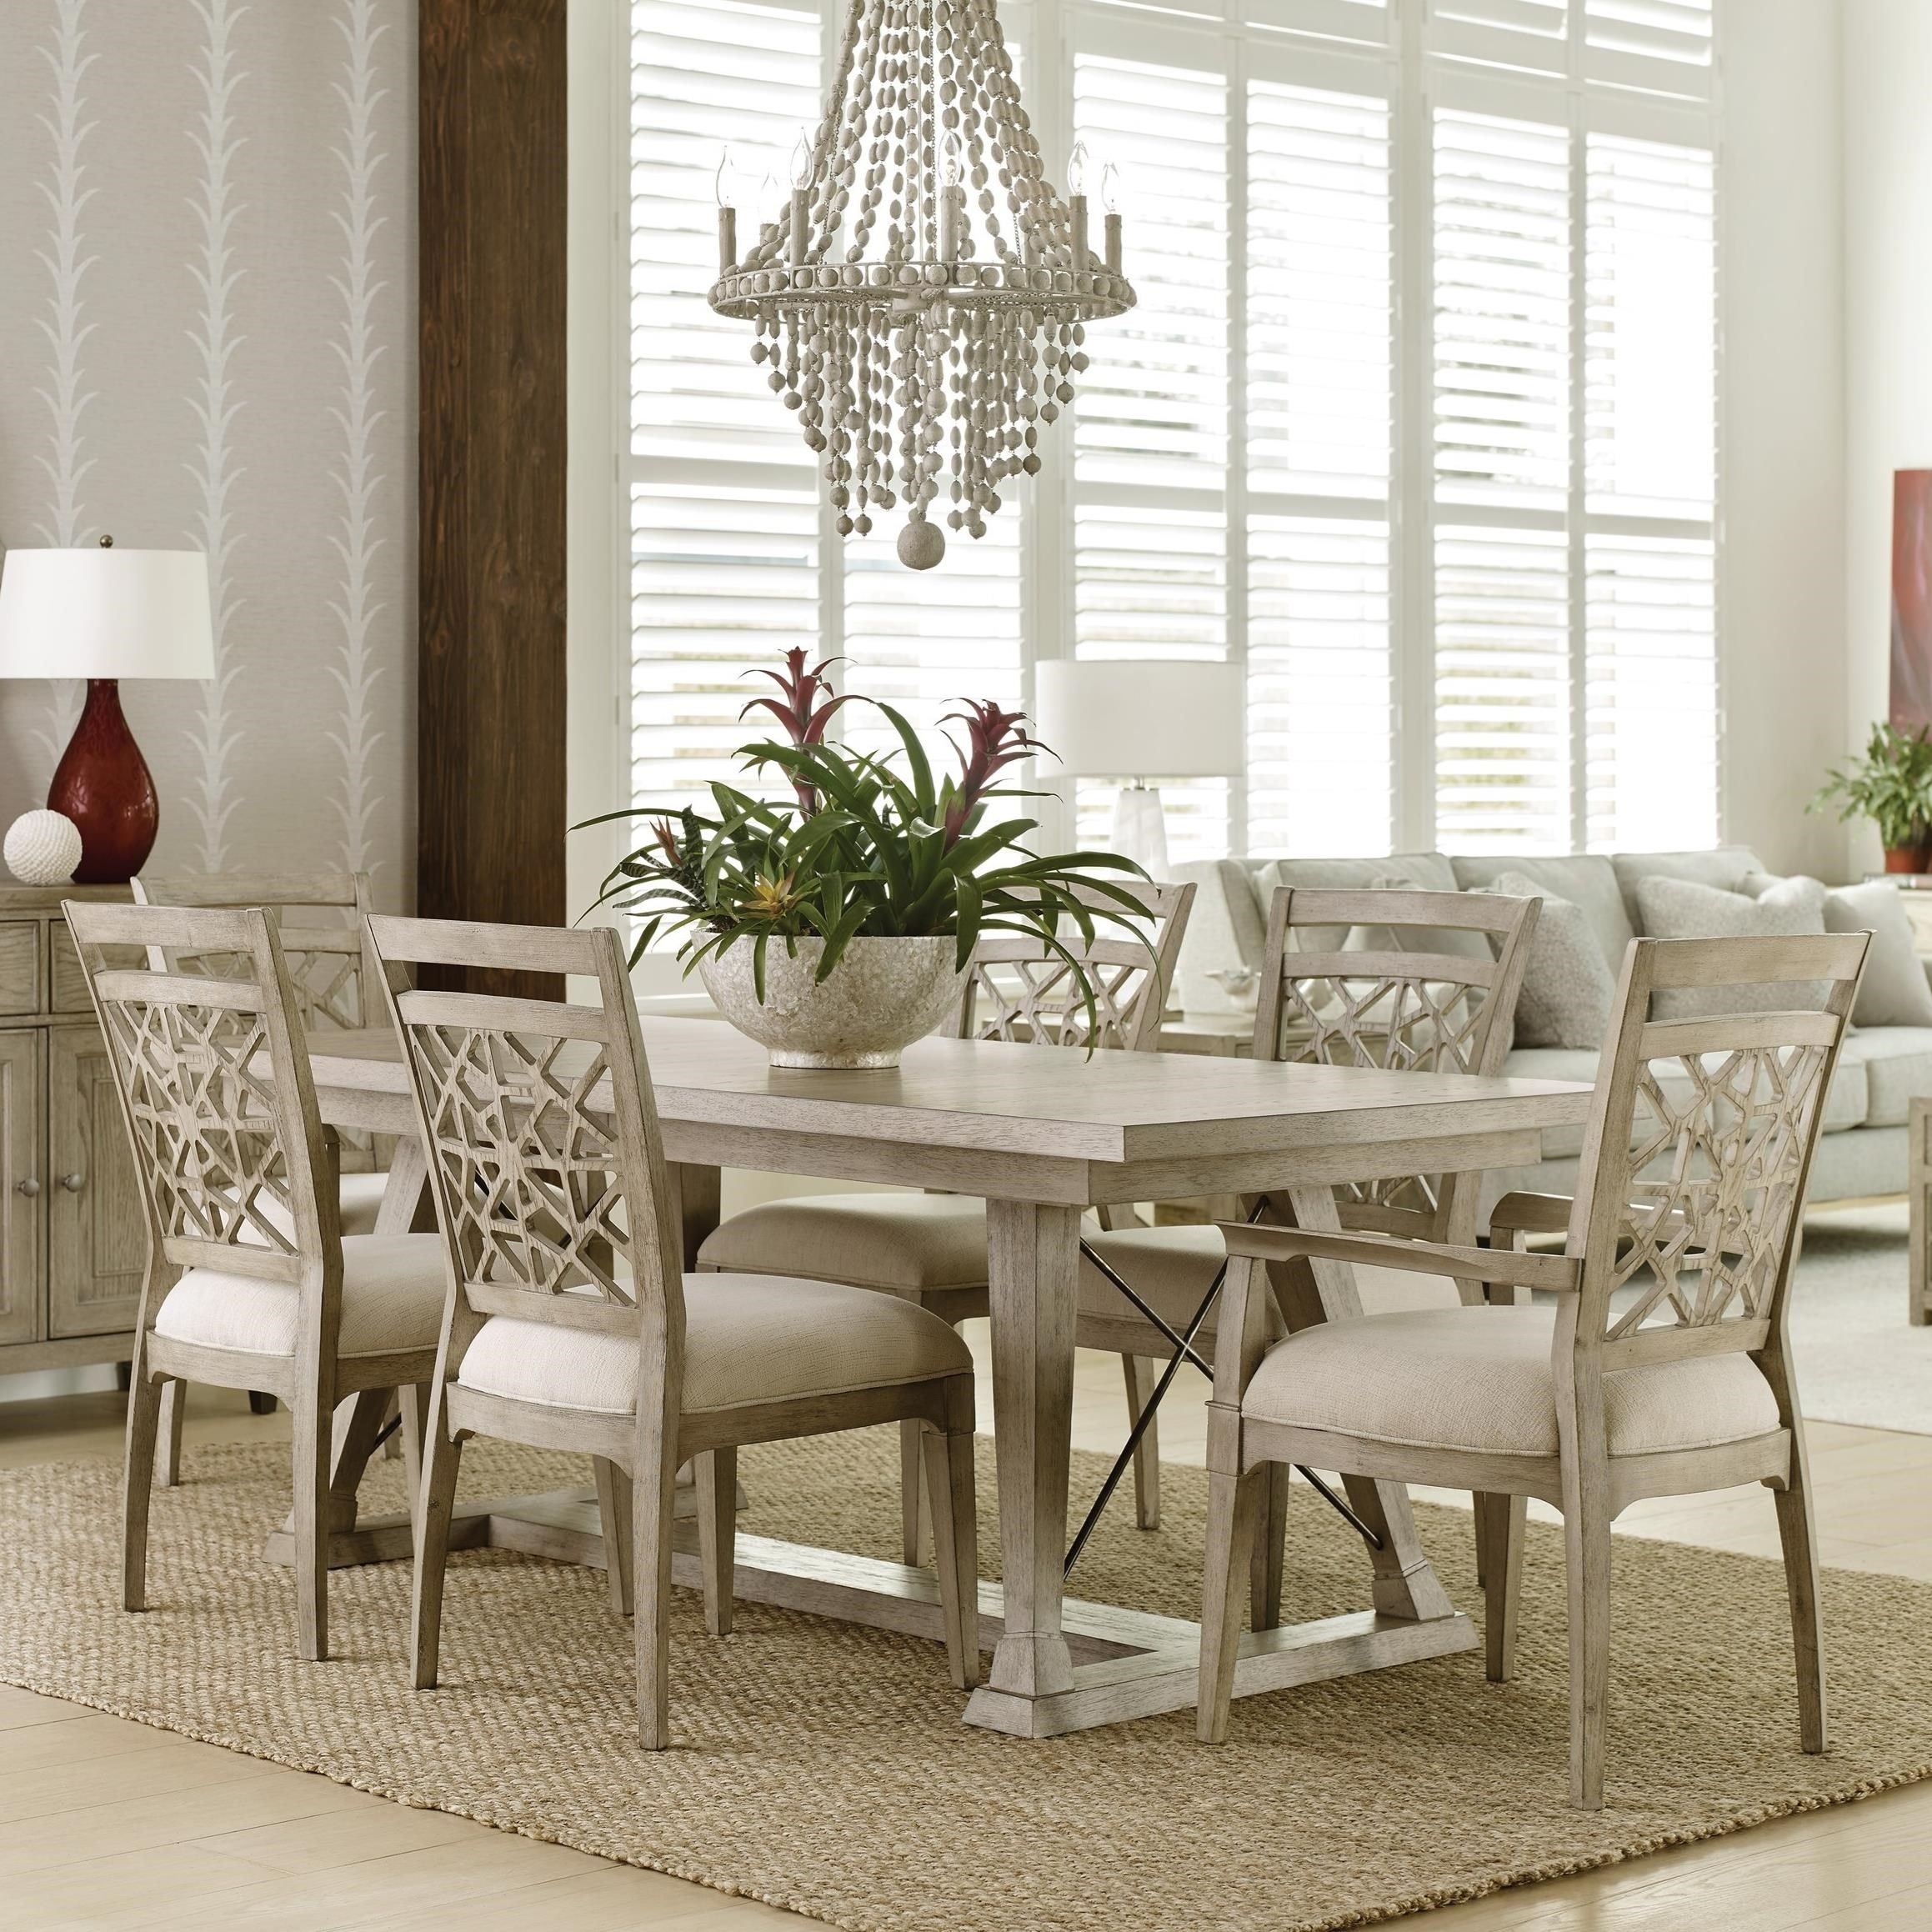 Vista 7 Piece Dining Set With Removable Leaves By American Drew At Hudson S Furniture Dining Room Sets Furniture Suburban Furniture